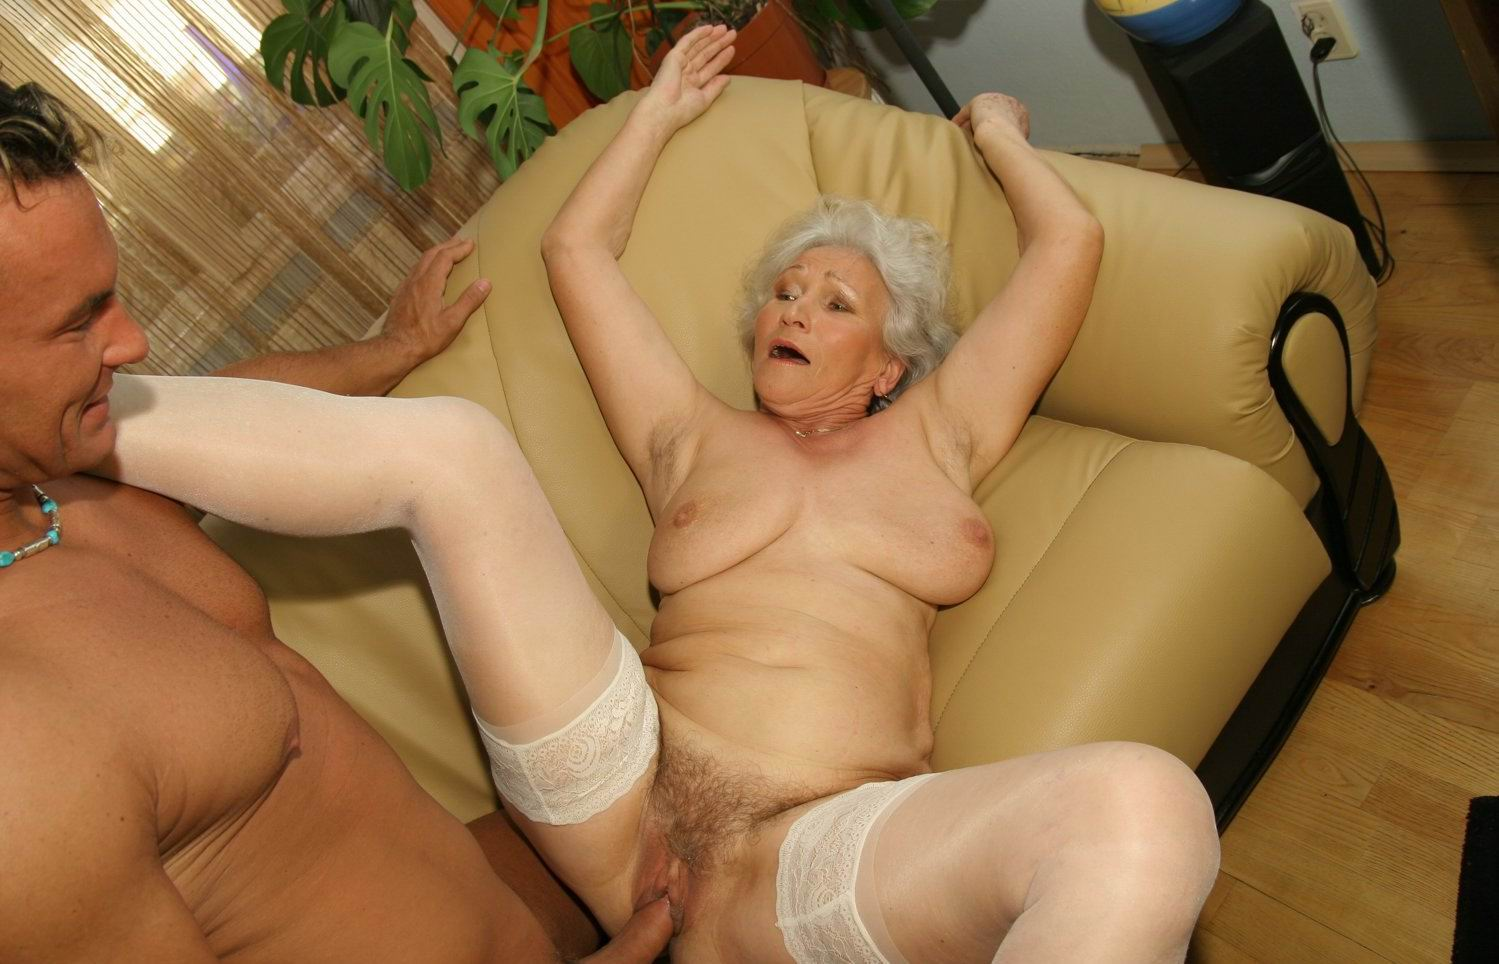 Horny Grannies:This site dedicated to older and mature women addicted to se